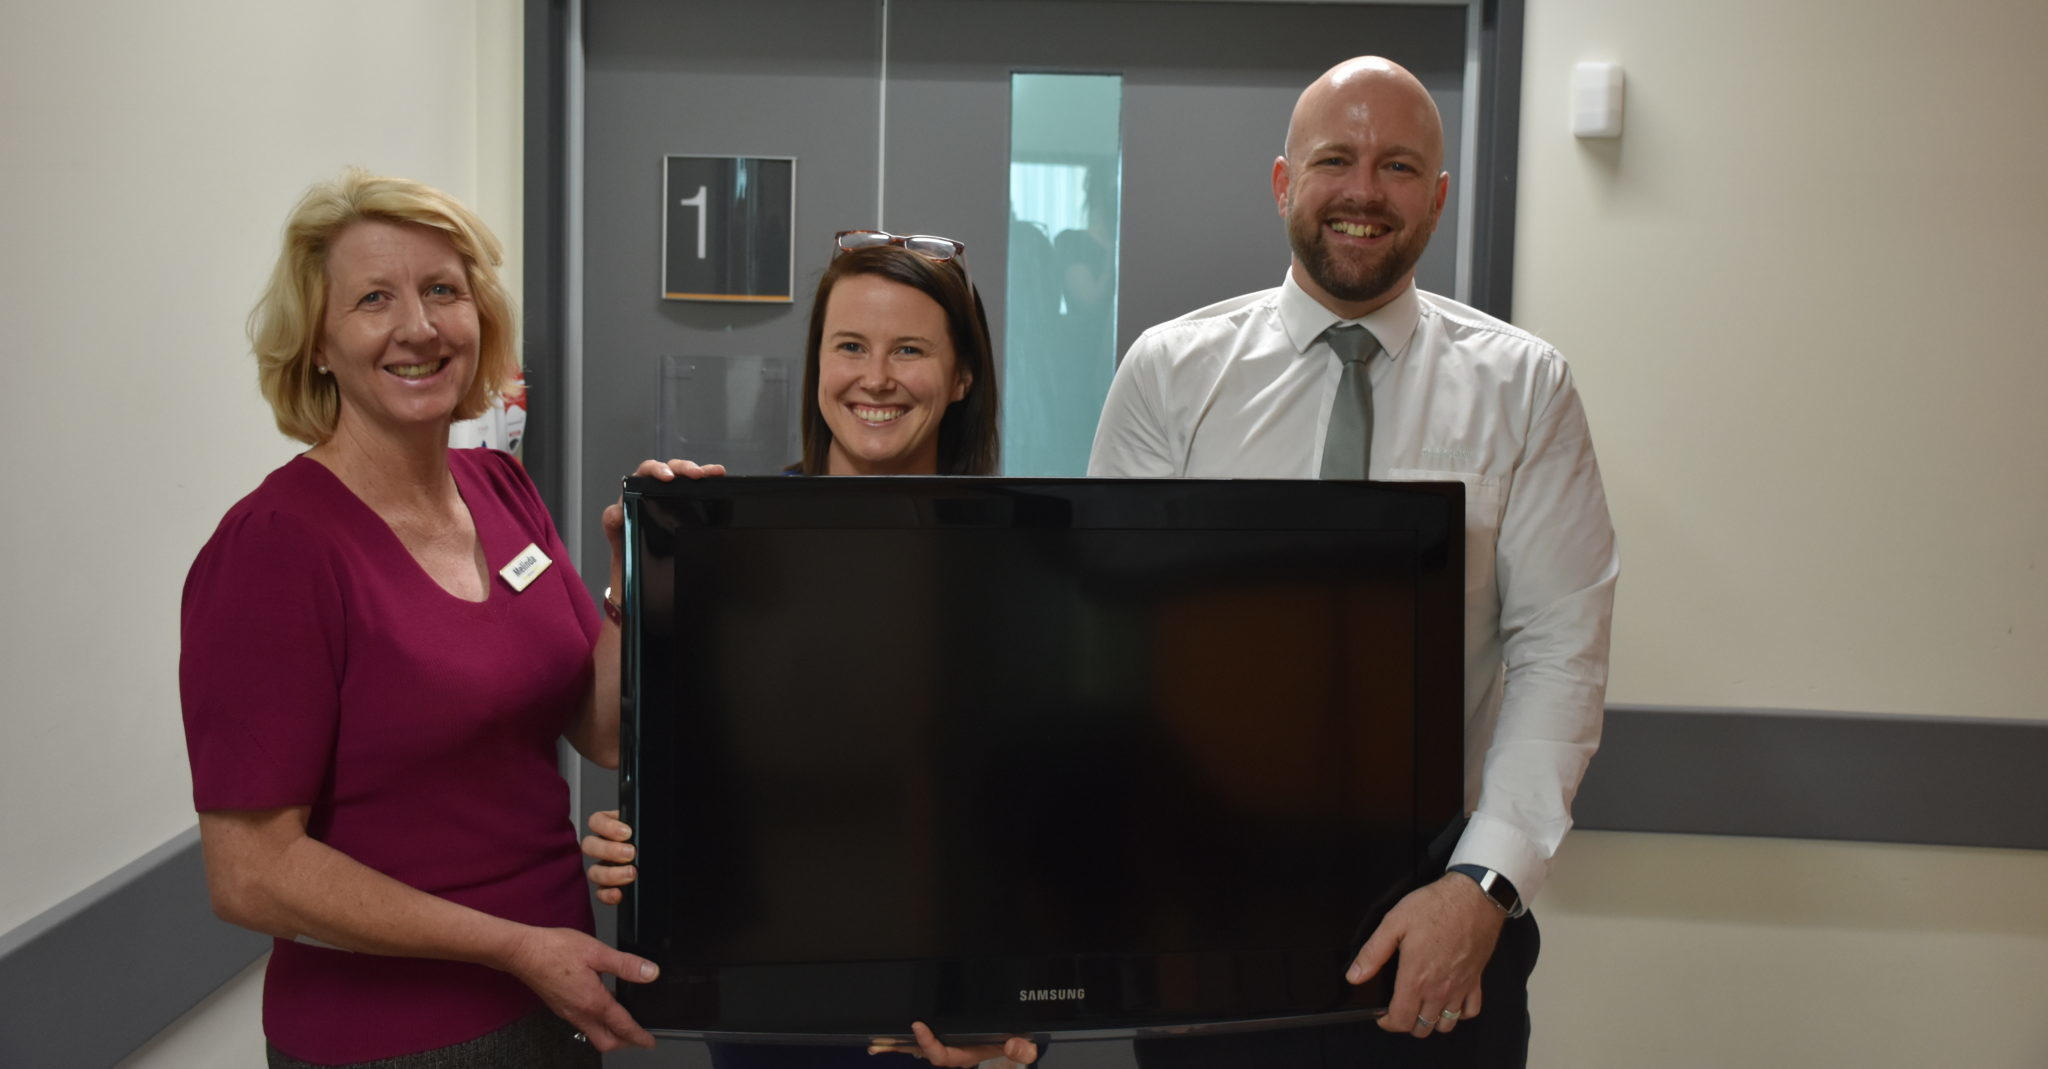 Bendigo Bank Donates TV